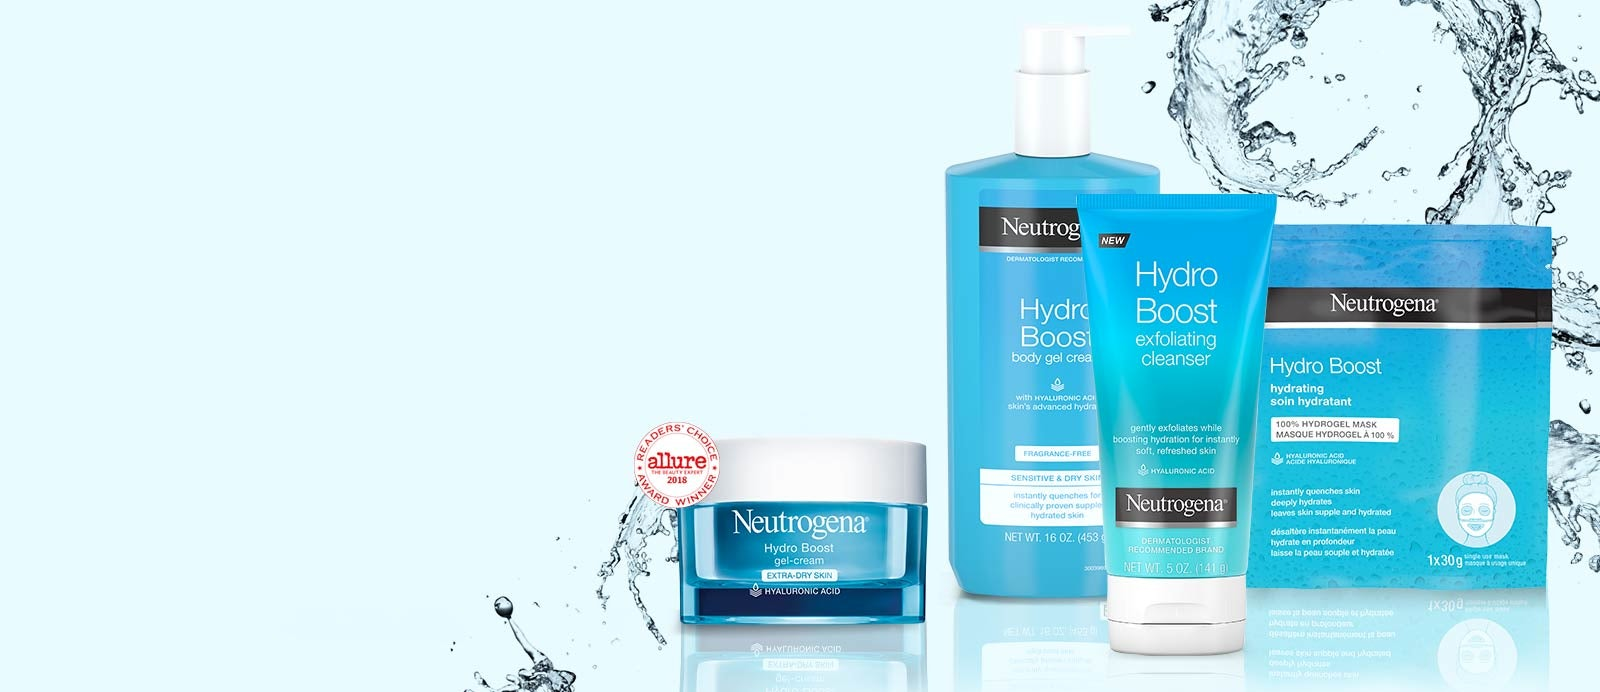 Skin Care Products for Healthier Skin | Neutrogena®